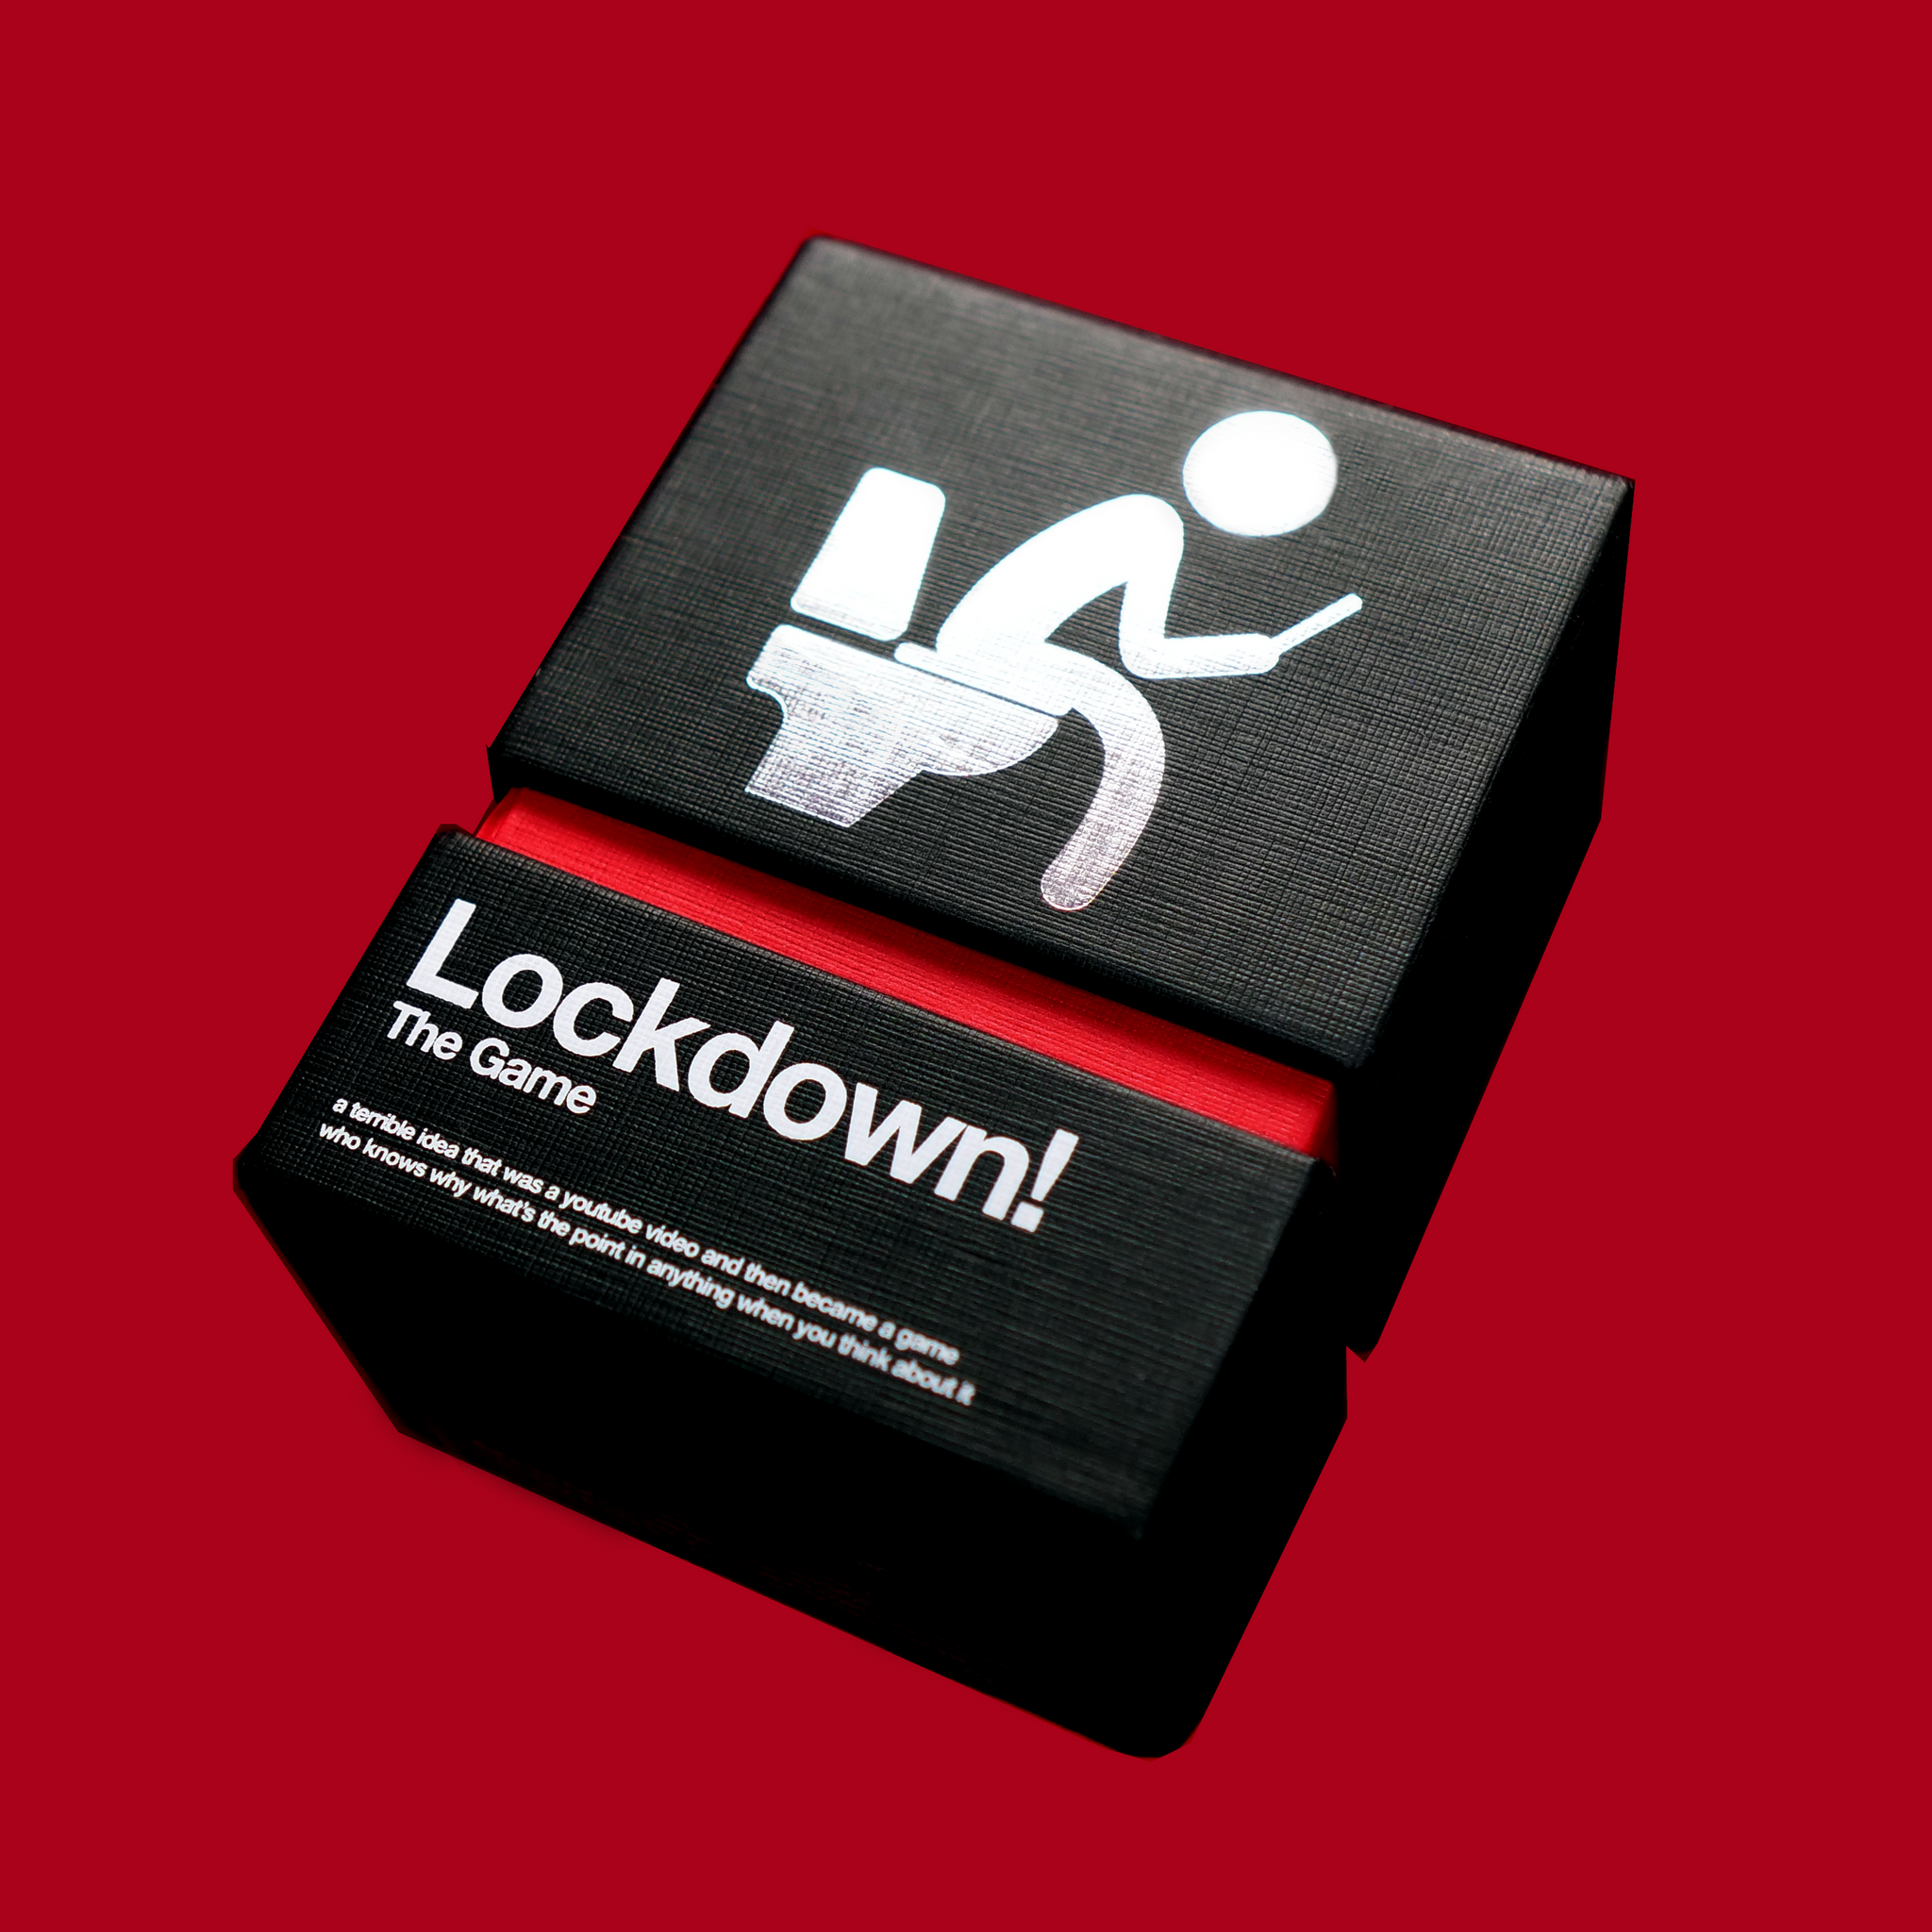 Lockdown! (The Game!)